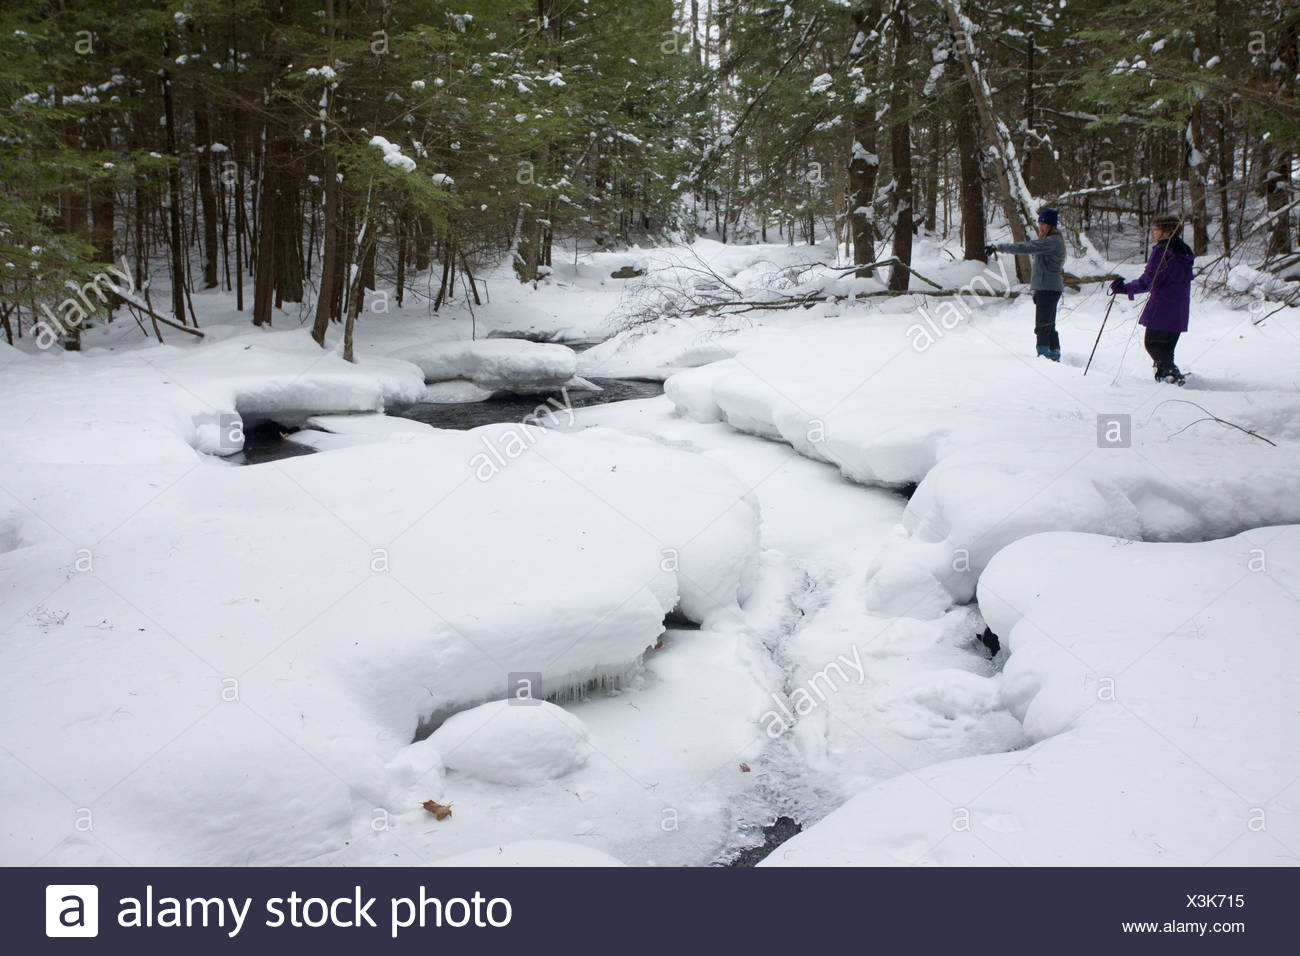 Stream woodland after heavy snow Robert Ingalls Preserve Rensselaer Land Trust Horsehaven Road Rensselaer County New York U.S.A - Stock Image